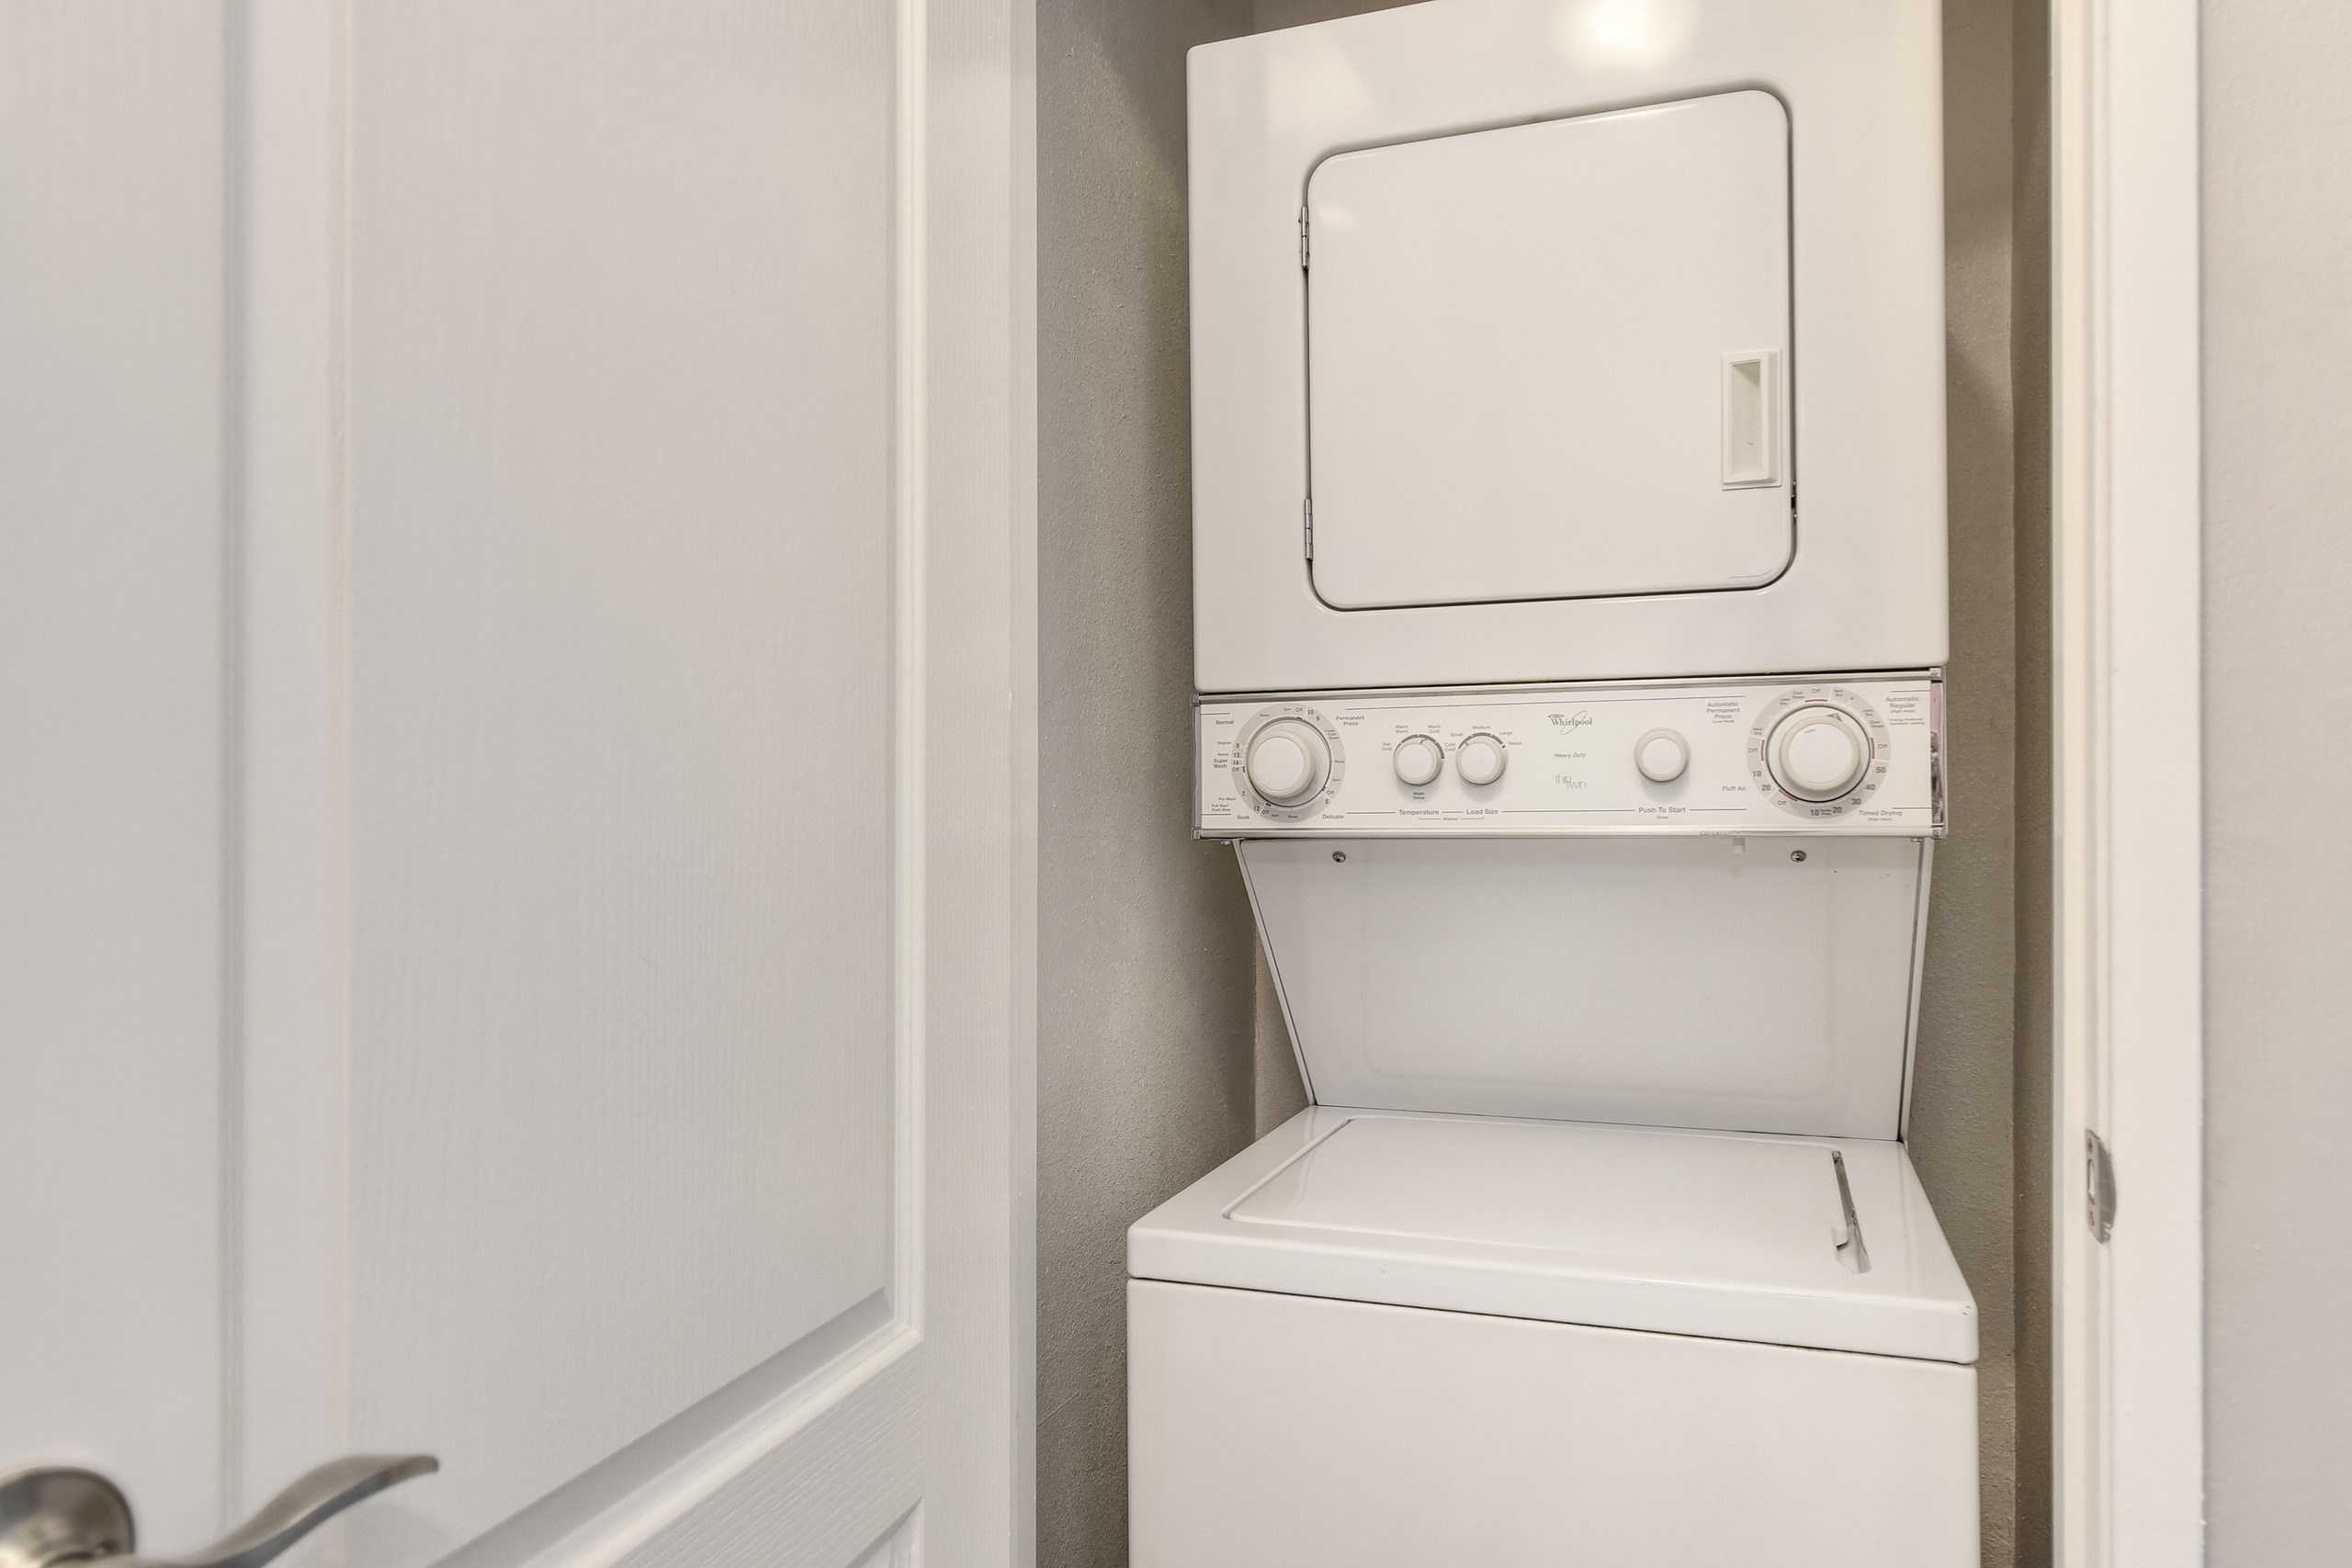 Laundry - Stackable Washer and Dryer